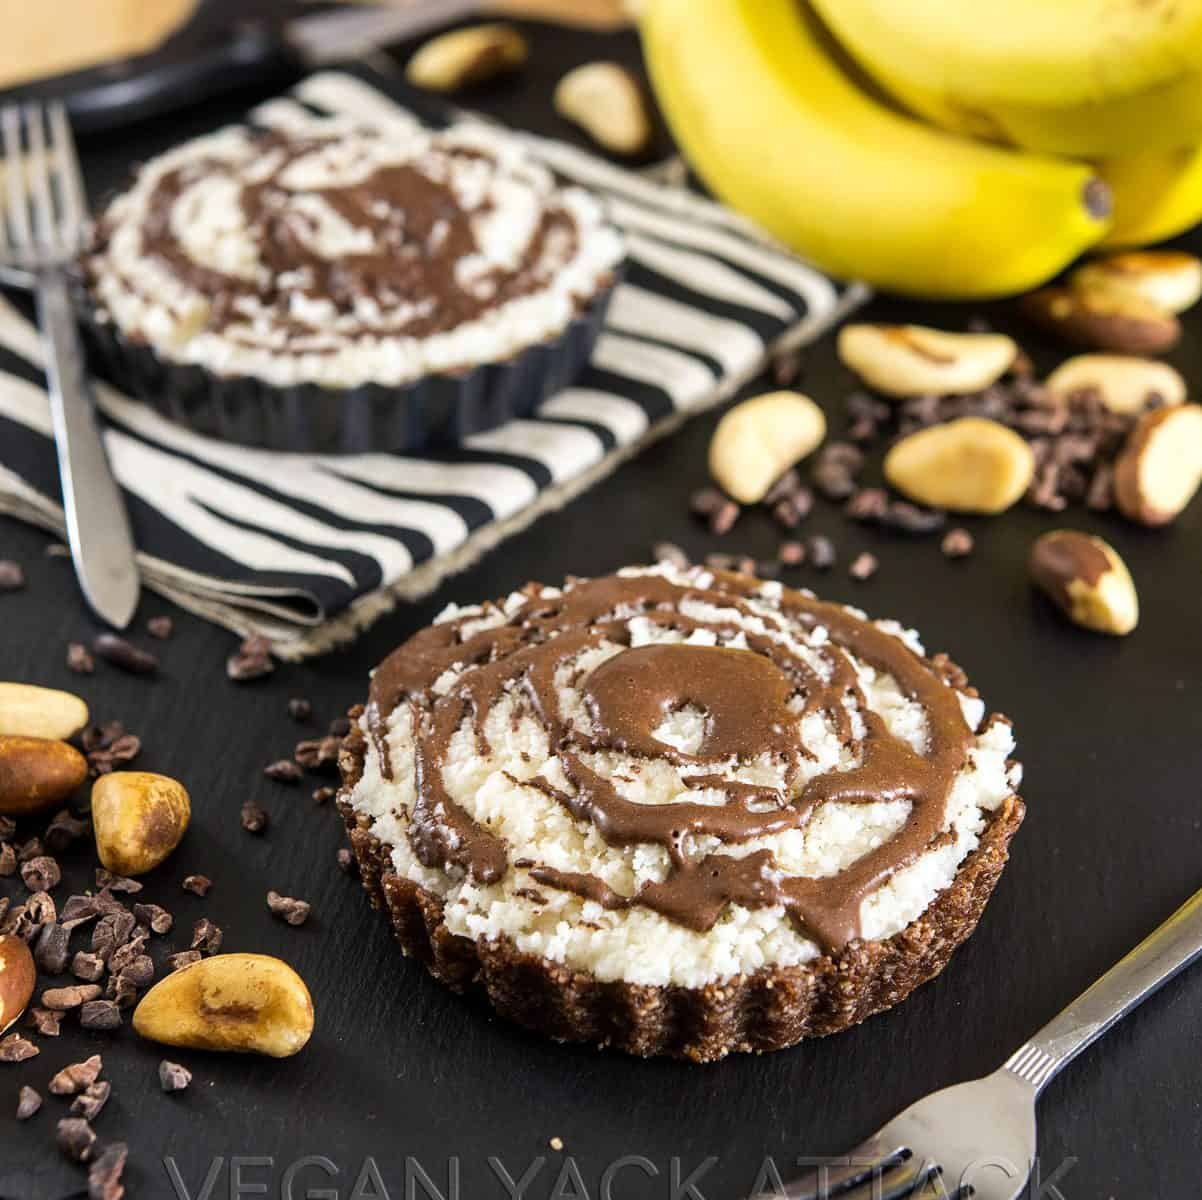 Jungle Pie with Banana, Coconut & Chocolate